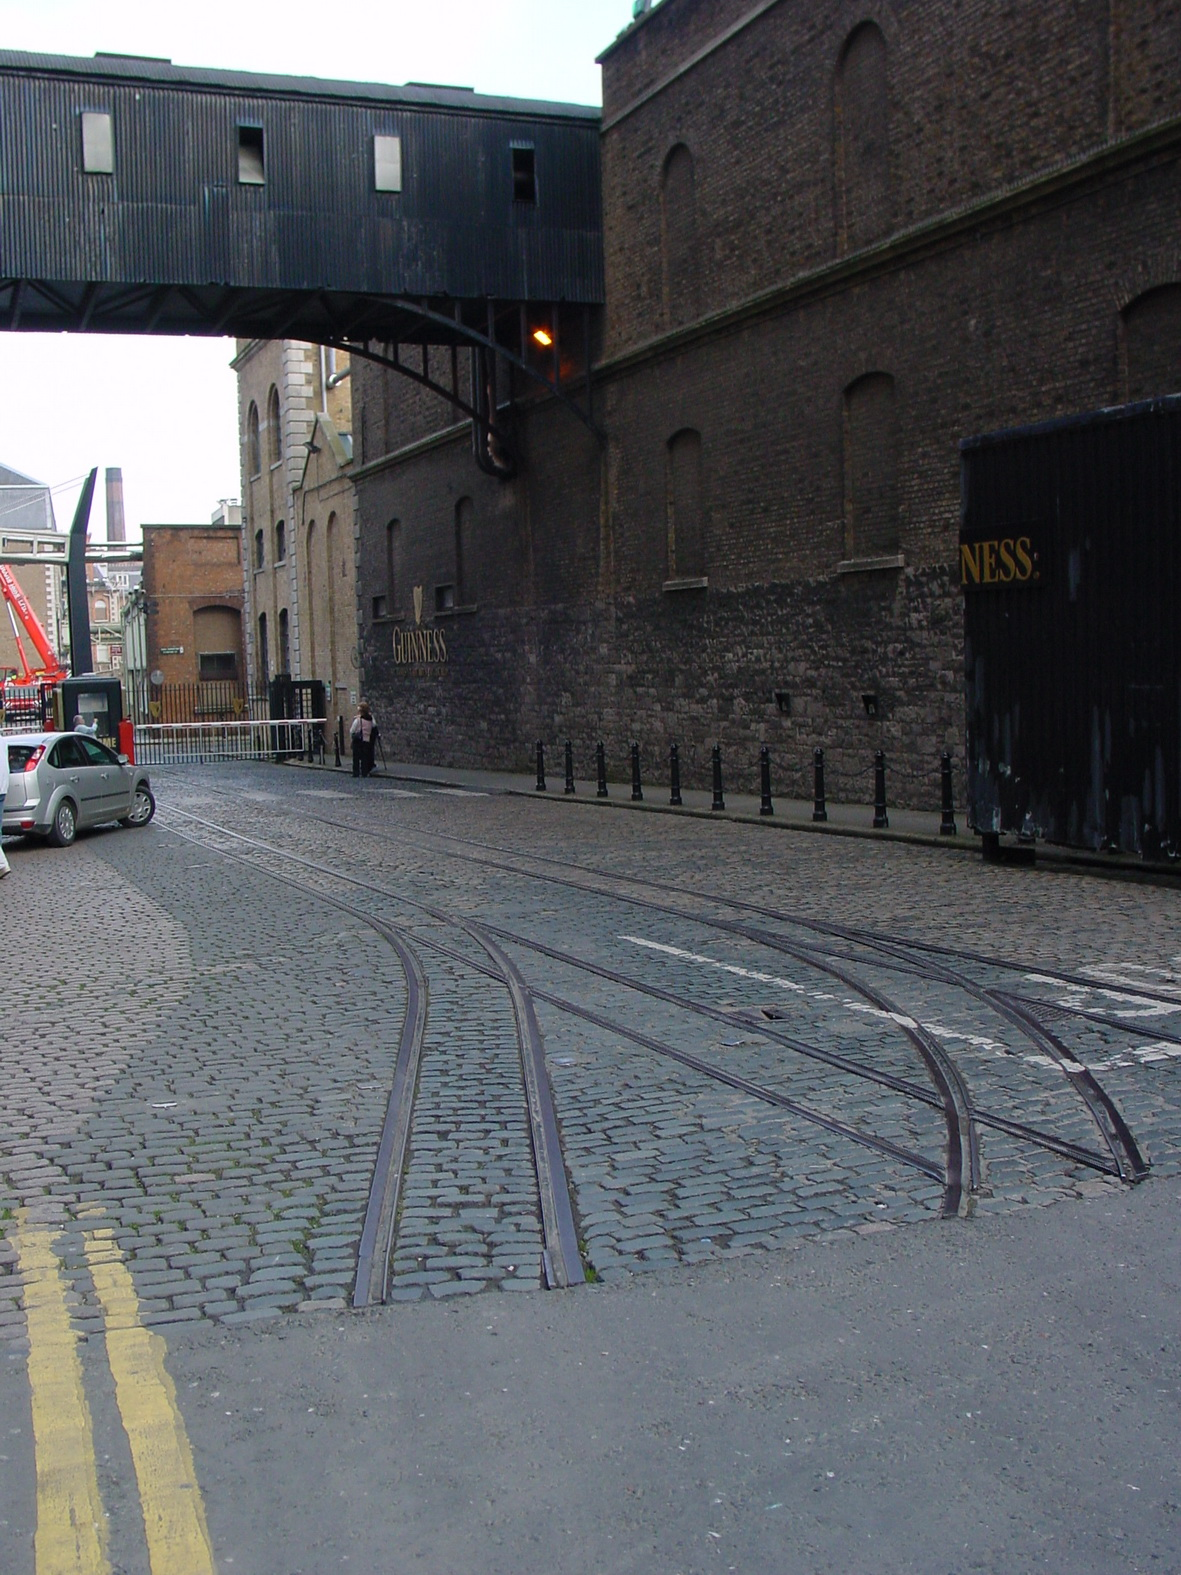 "Tramway 1' 10"" tracks at the entrance to the Guinness Storehouse"